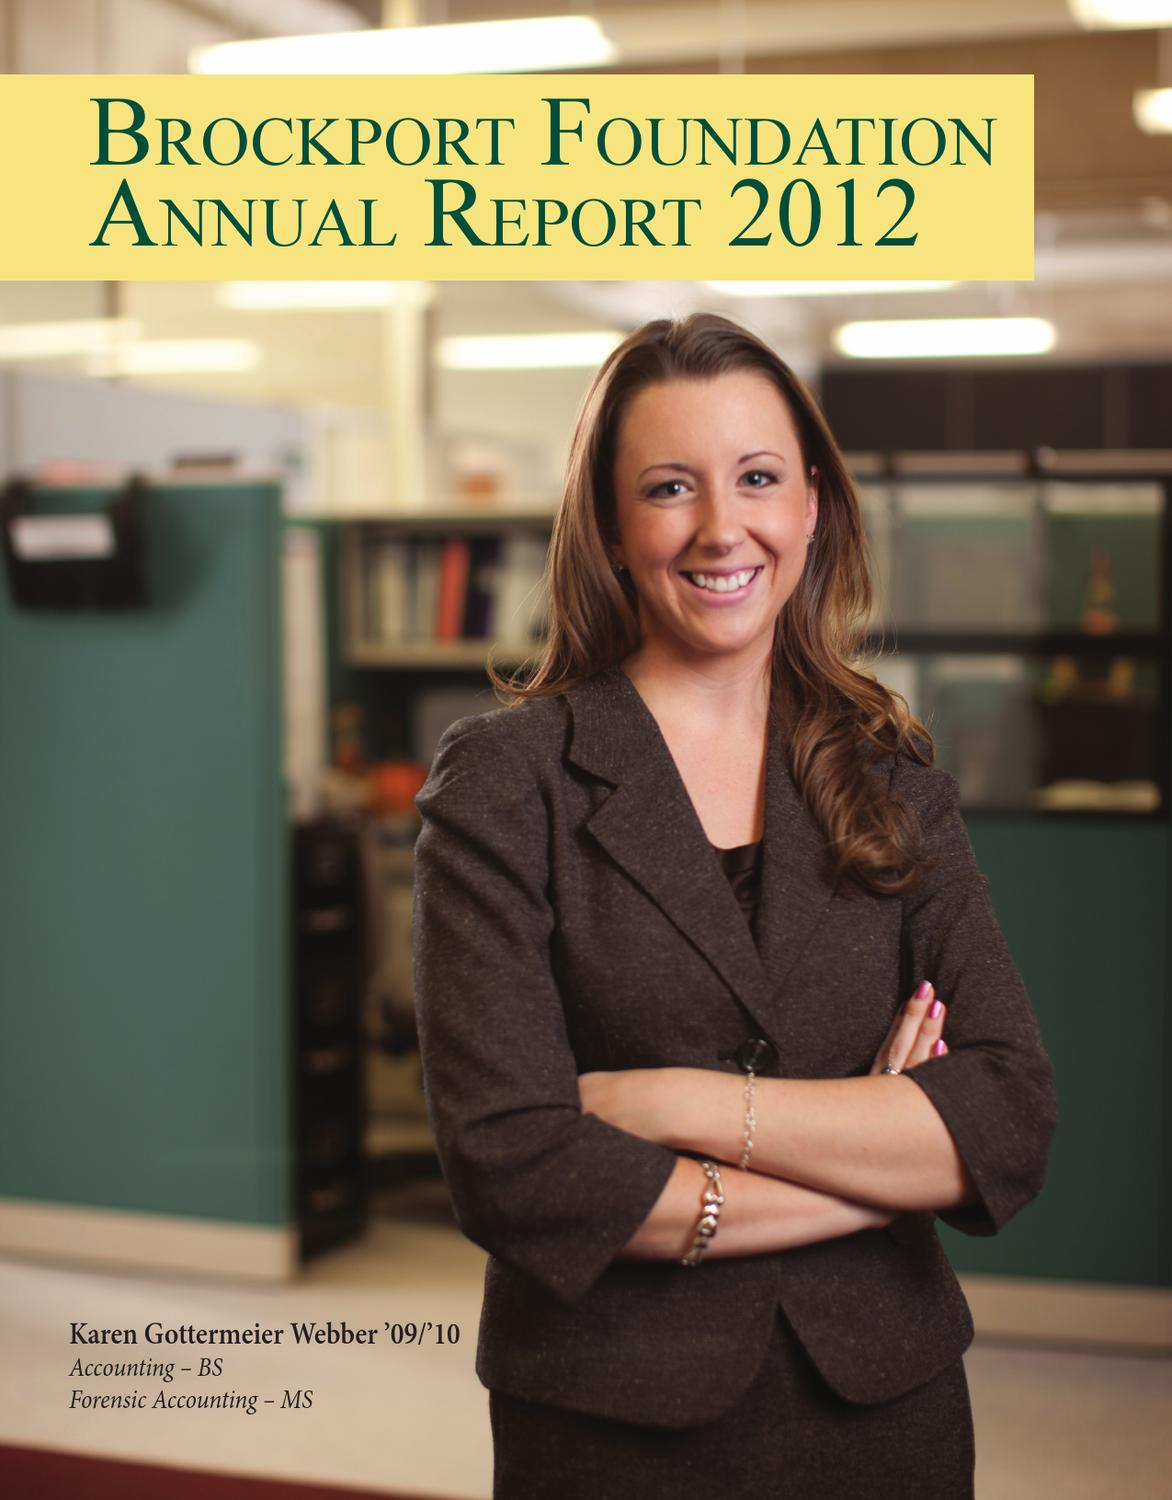 mka annual report by montclair kimberley academy issuu brockport foundation 2012 annual report